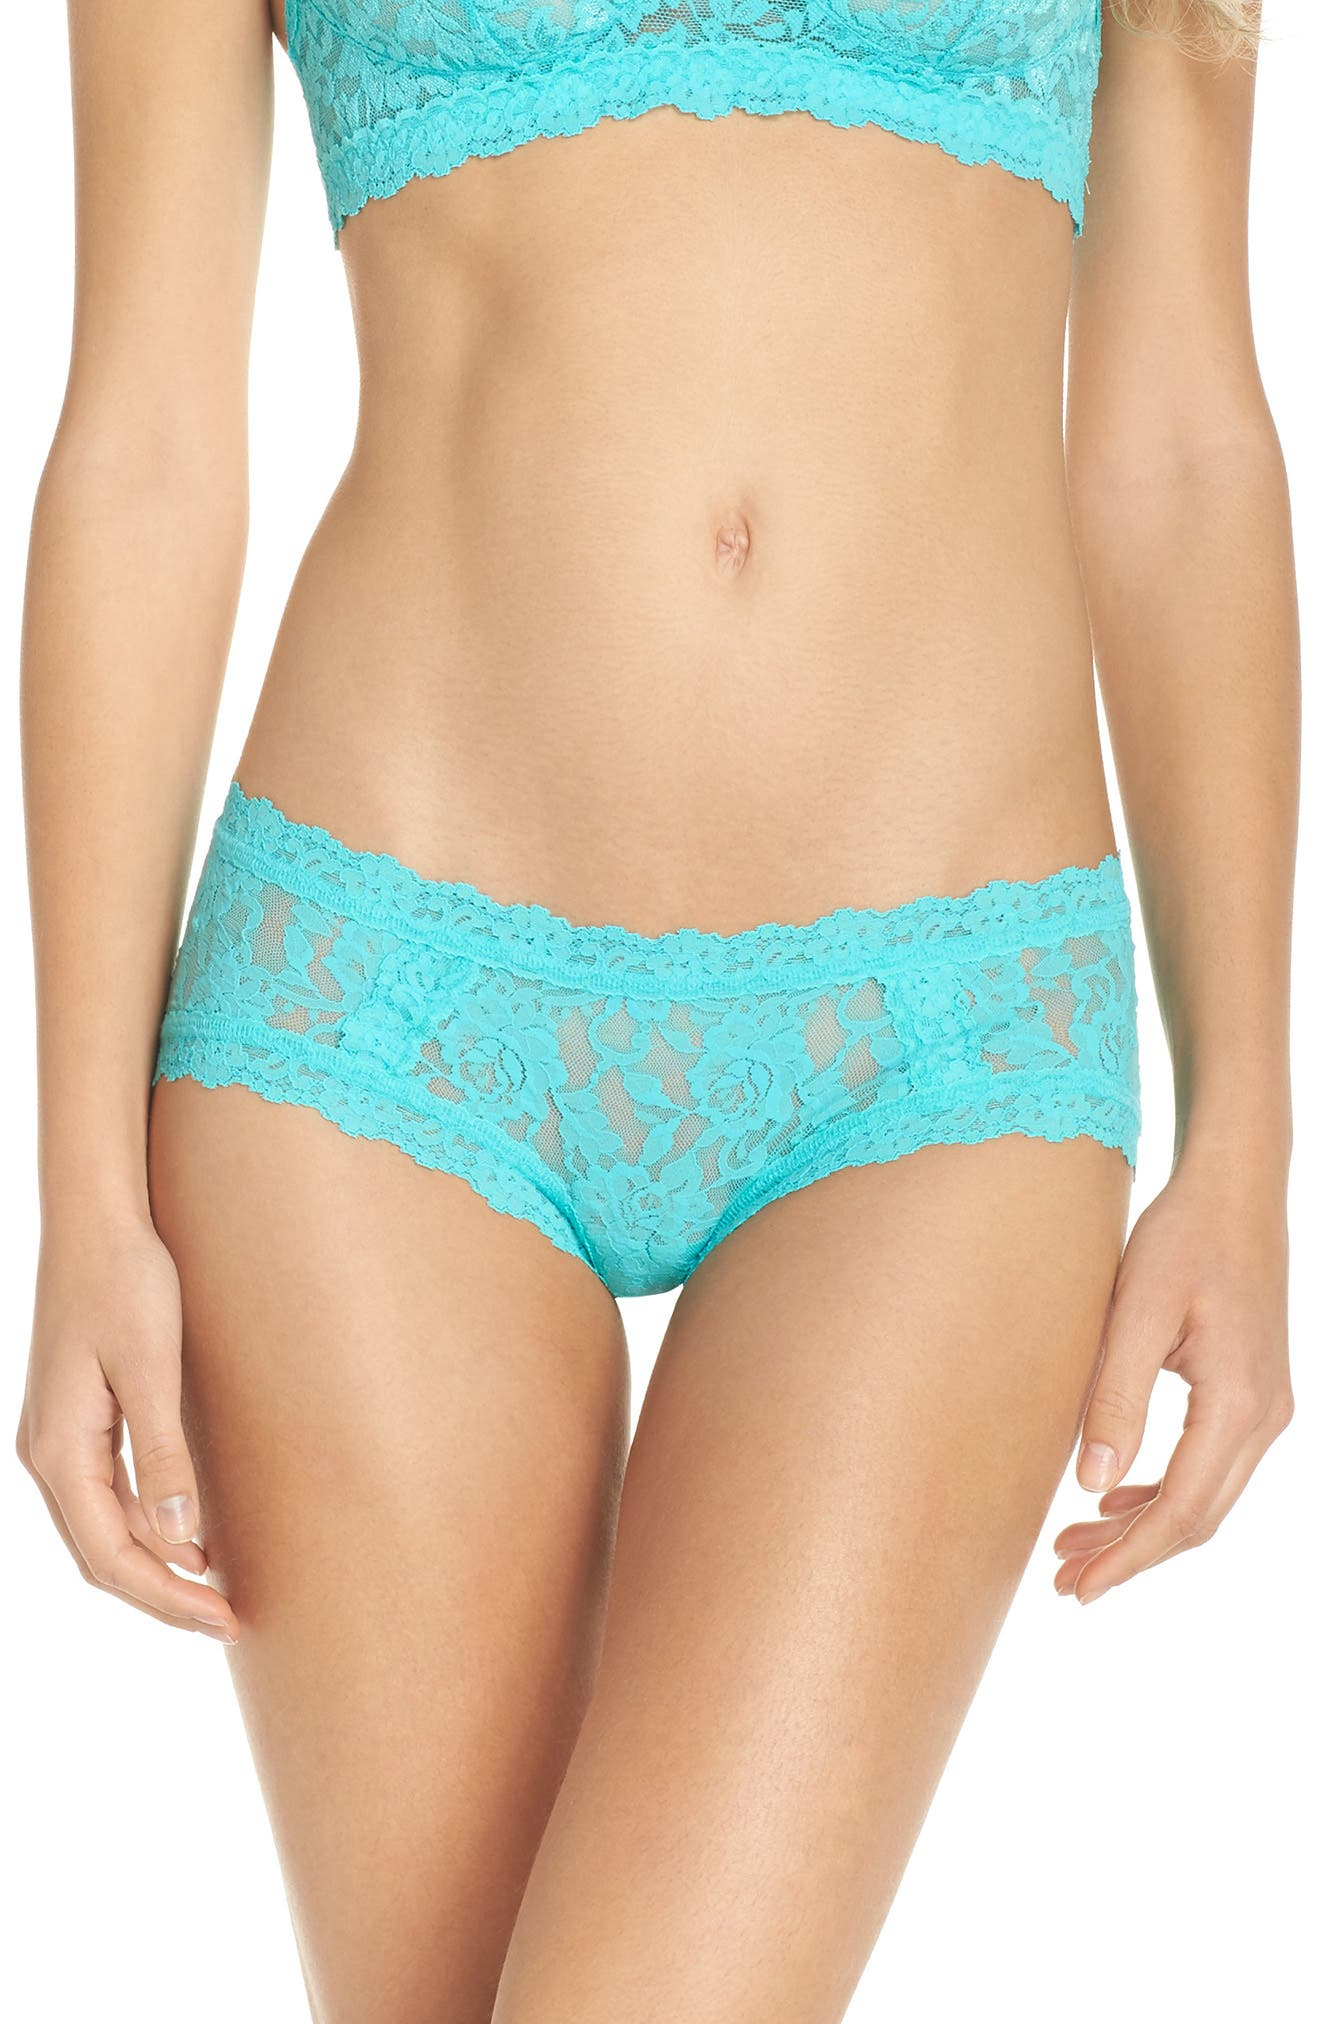 Floral Stretch Lace Girlkini,                             Main thumbnail 3, color,